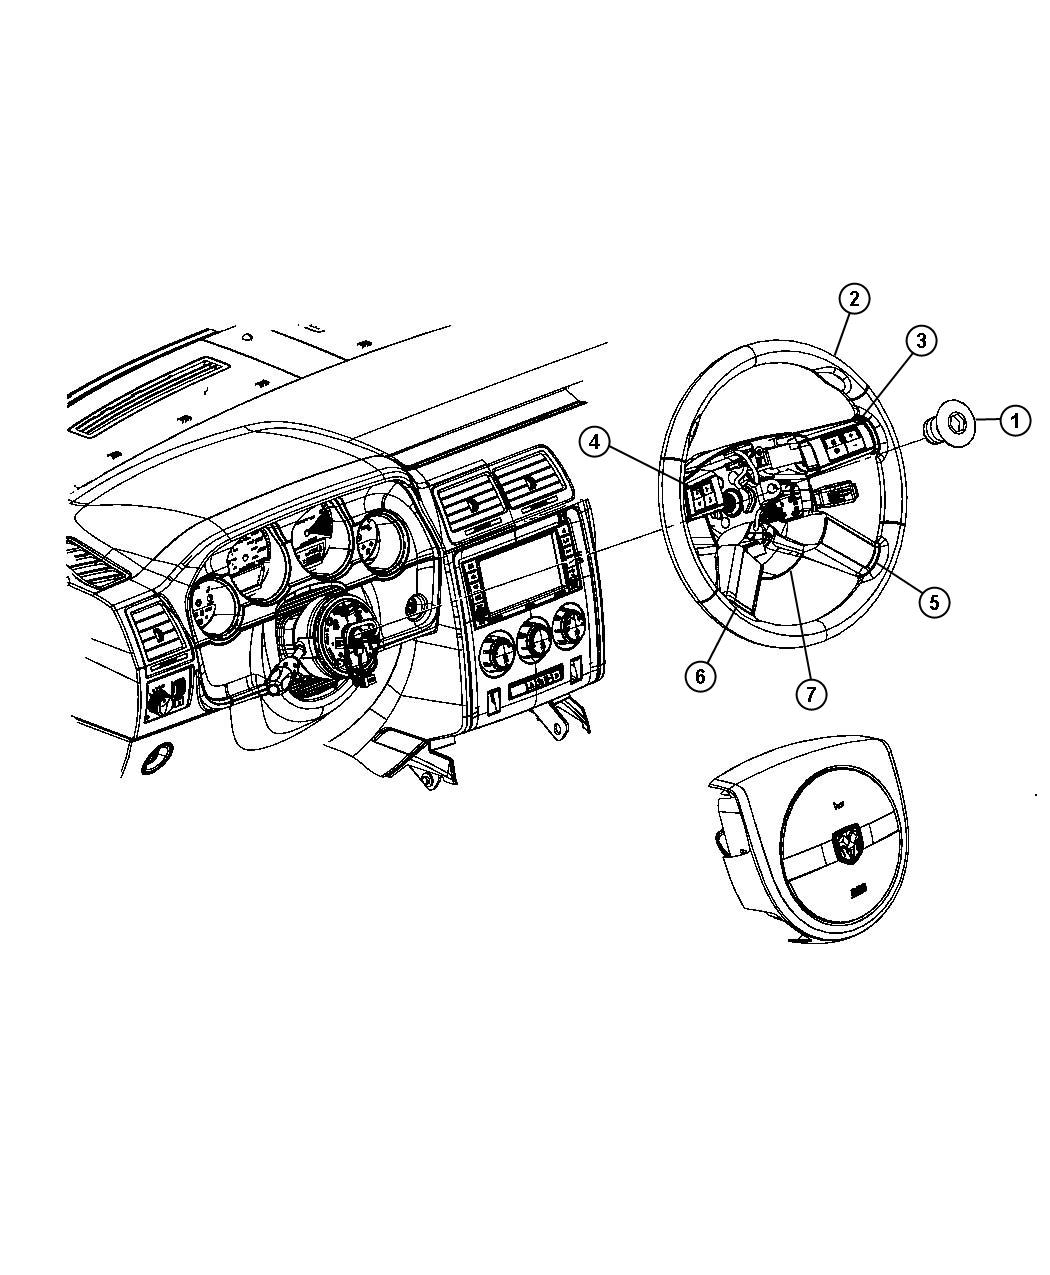 Wiring Diagram 1965 Dodge A100 Van. Plymouth Voyager Wiring ... on